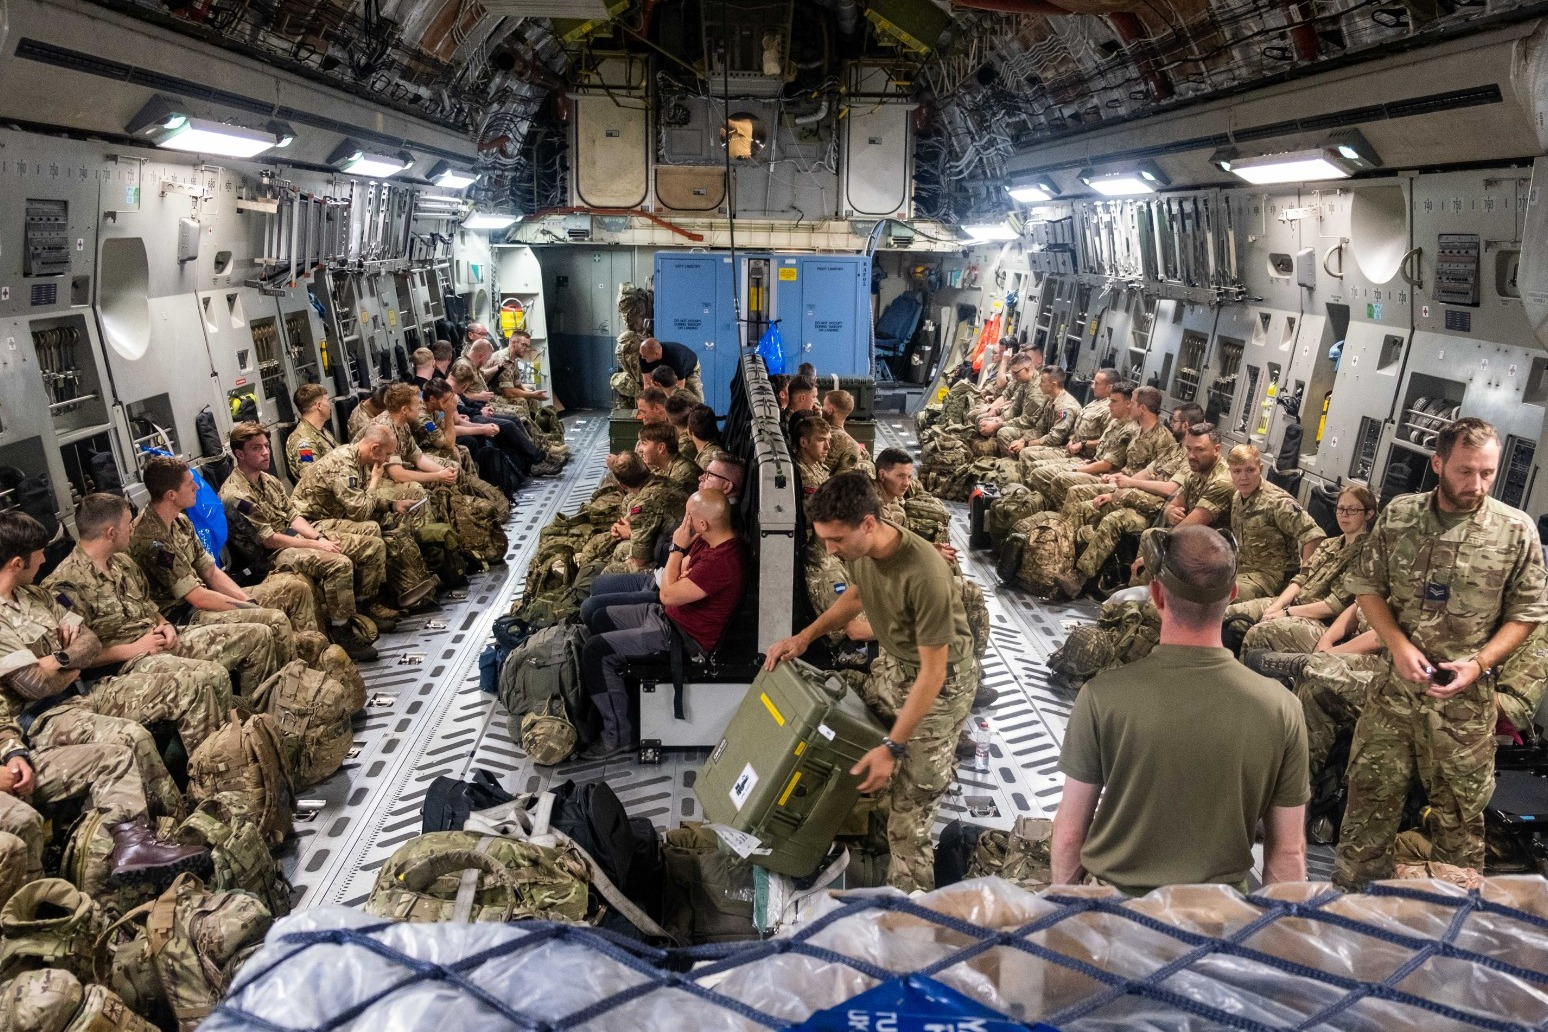 Operation to evacuate UK nationals from Afghanistan under way